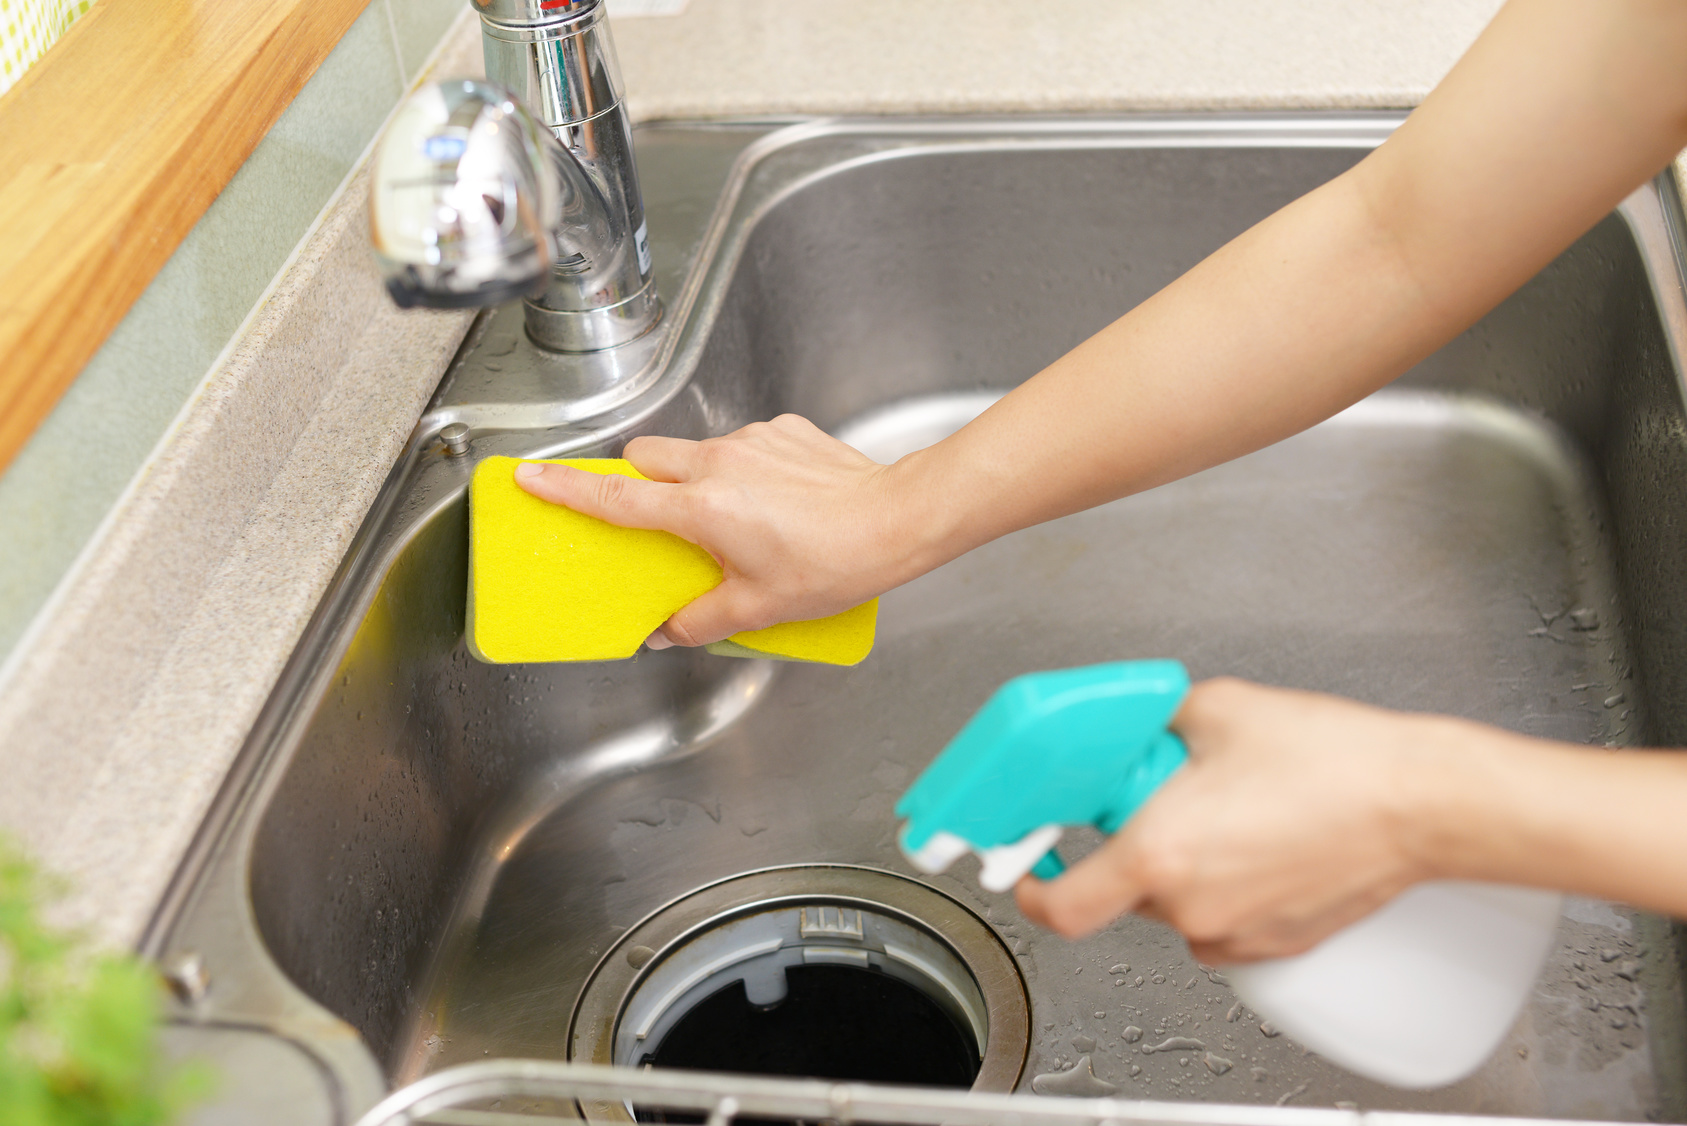 Care Workers Guide to Food Hygiene | EduCare - Online Training